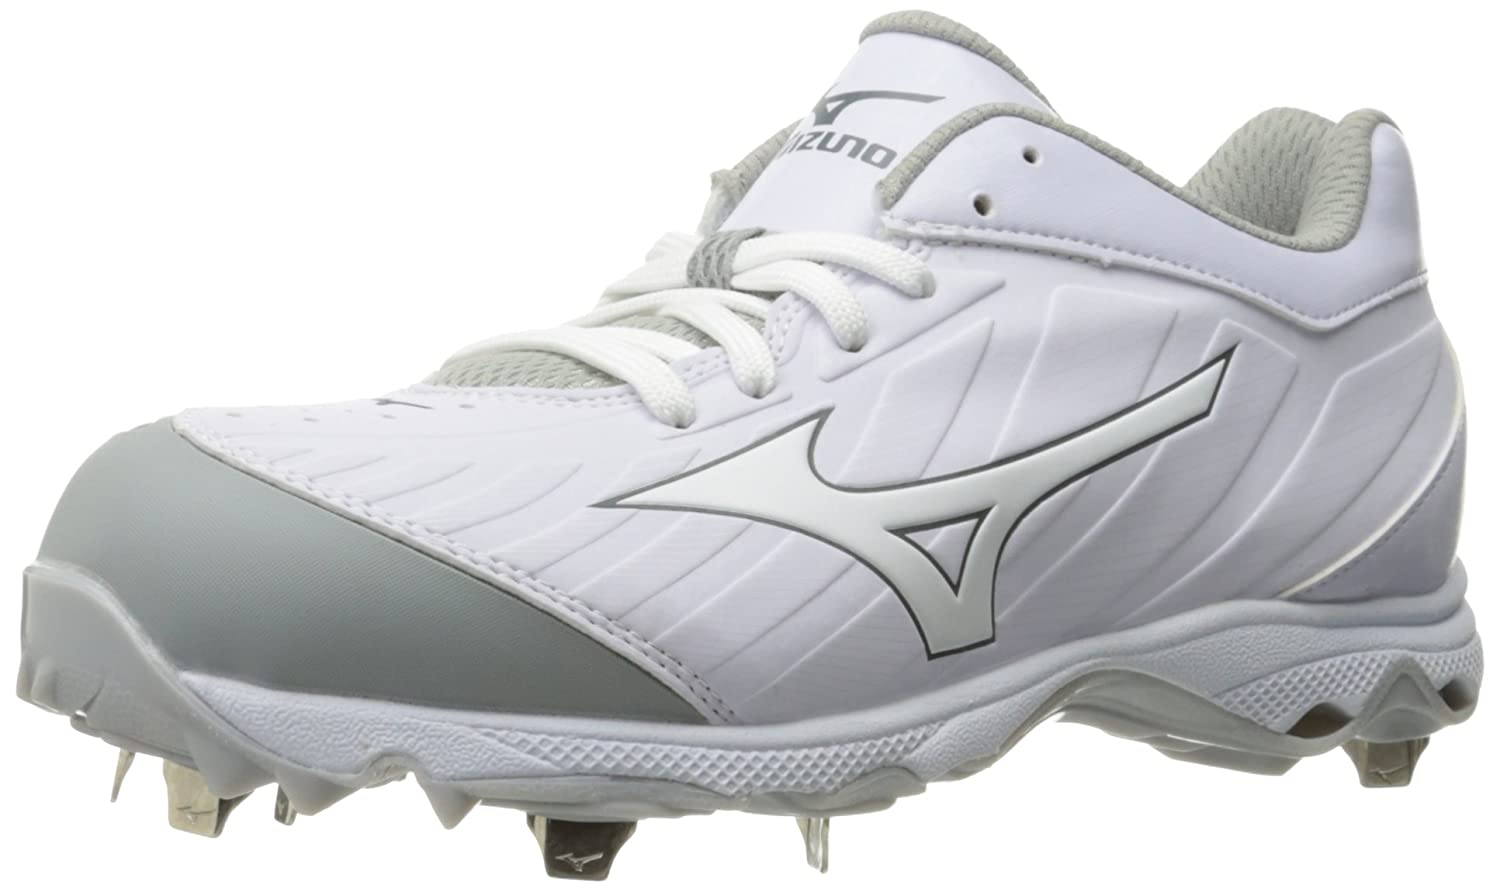 Mizuno Womens 9-Spike Advanced Sweep 3 Low Top Lace Up Baseball Shoes B01JTOC7NK 6 C/D US|ホワイト ホワイト 6 C/D US